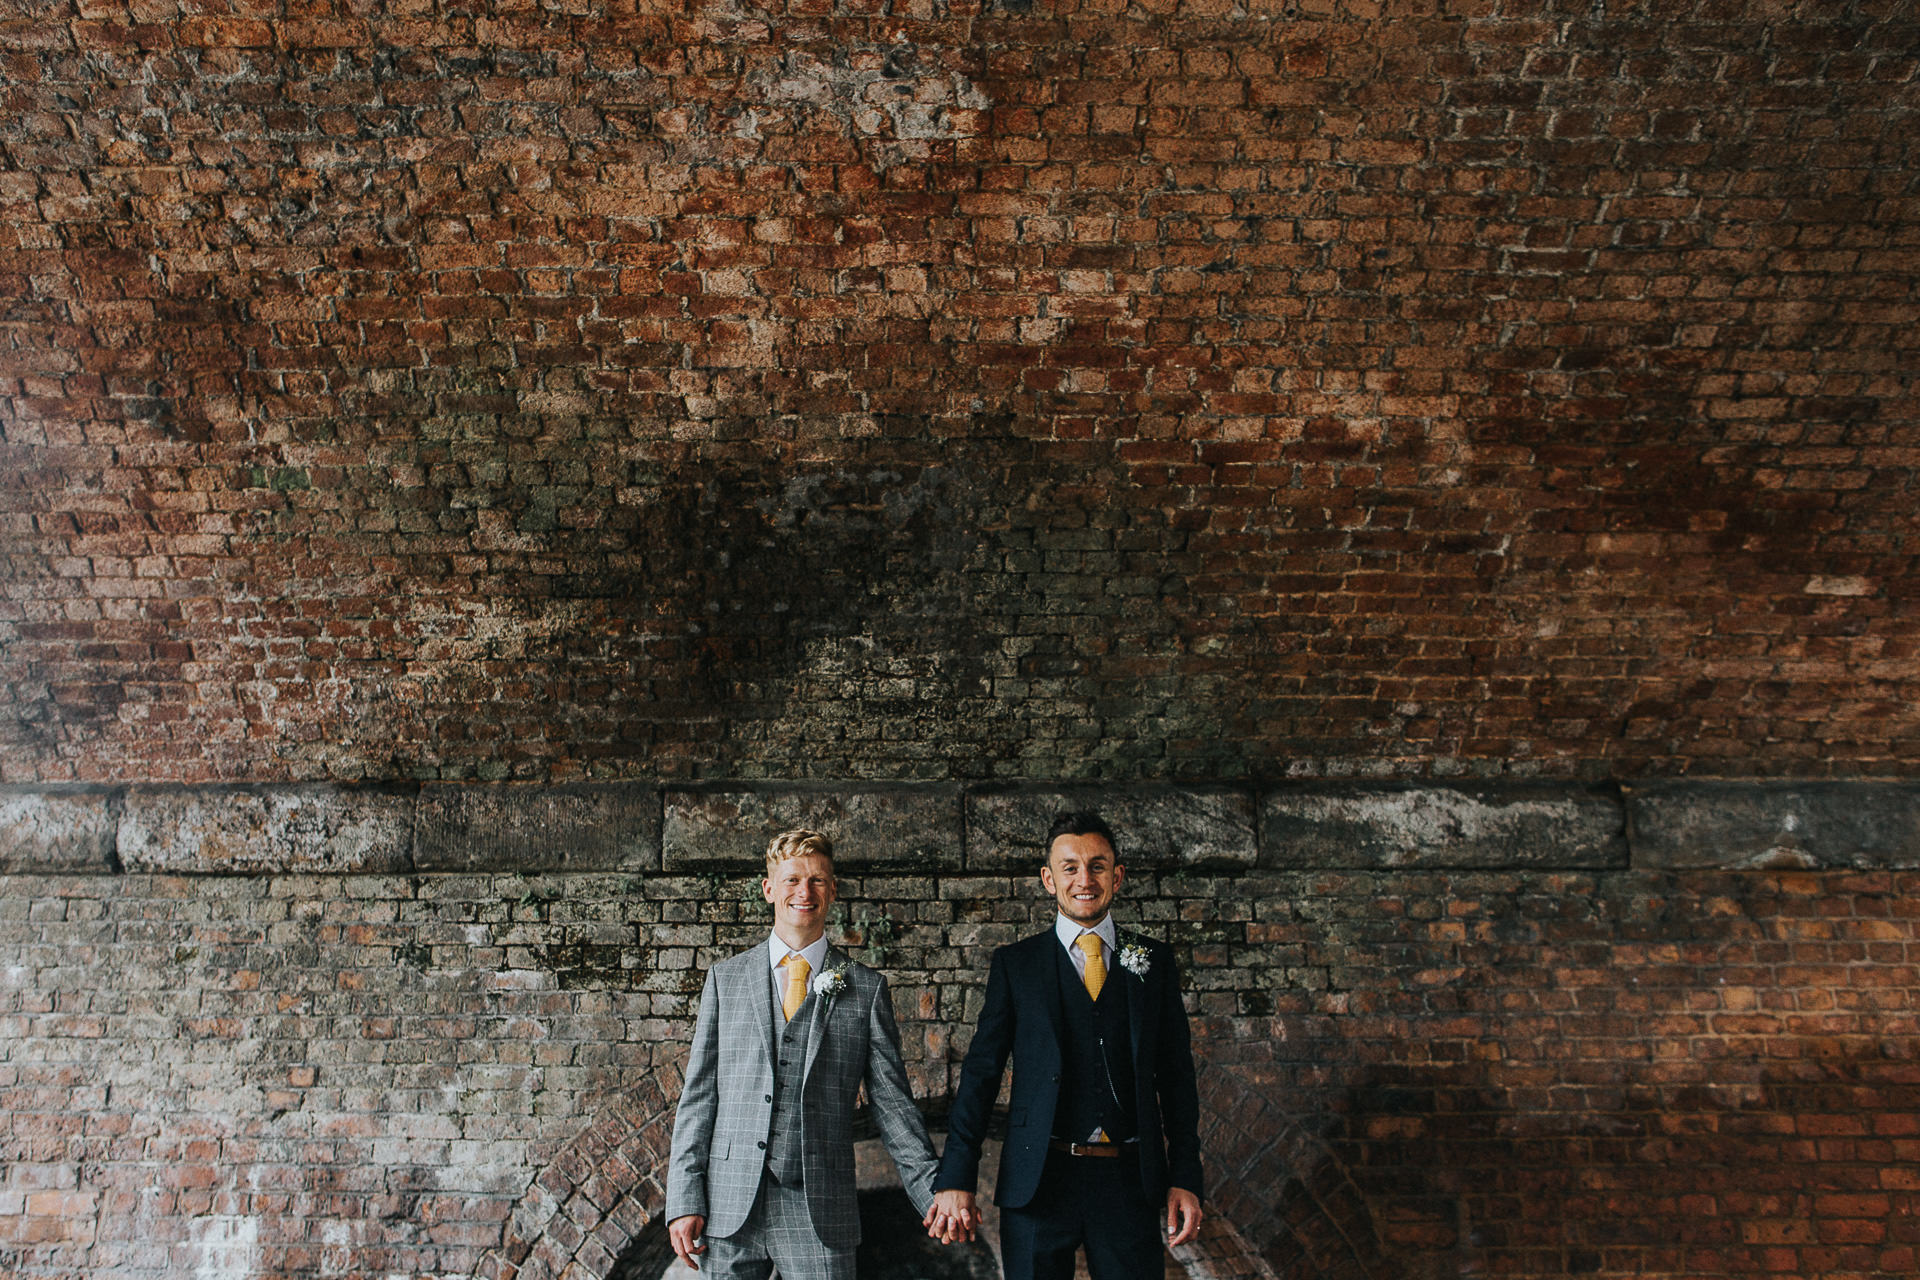 ECLECTIC HOTEL GROUP WEDDING, GREAT JOHN STREET HOTEL, GREAT JOHN STREET HOTEL WEDDING PHOTOGRAPHY, MANCHESTER WEDDING PHOTOGRAPHER, GREAT JOHN STREET HOTEL WEDDING PHOTOGRAPHER, CREATIVE MANCHESTER WEDDING PHOTOGRAPHER, SAME SEX WEDDING MANCHESTER, GAY WEDDING PHOTOGRAPHER, AYESHA PHOTOGRAPHY